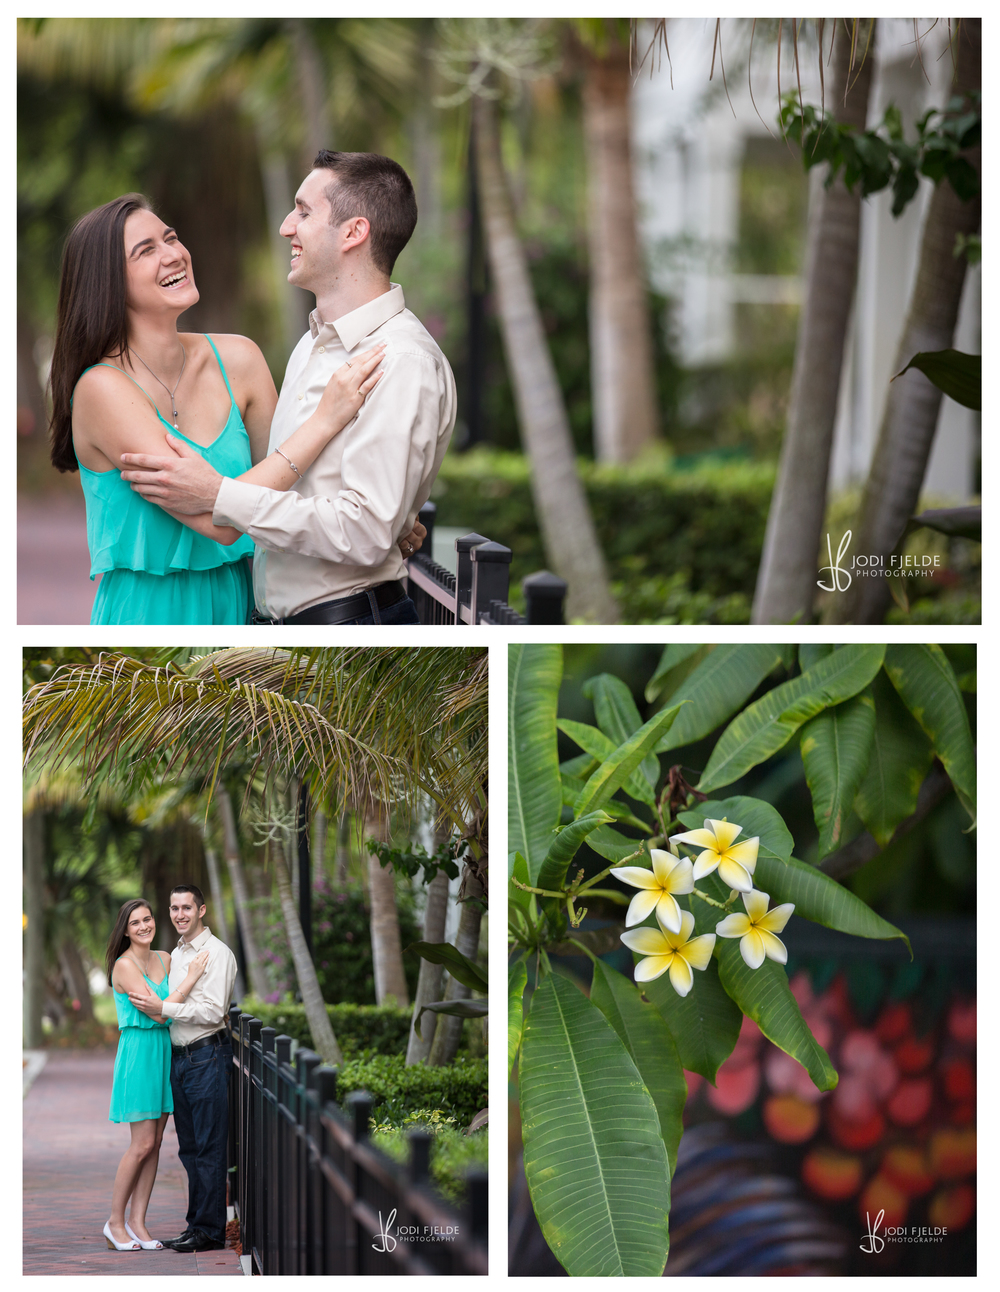 Delray_BEach_Sundy_HouseFlorida_engagement_E-session_Allison_&_Matt_photography_jodi_Fjelde_photography_1.jpg